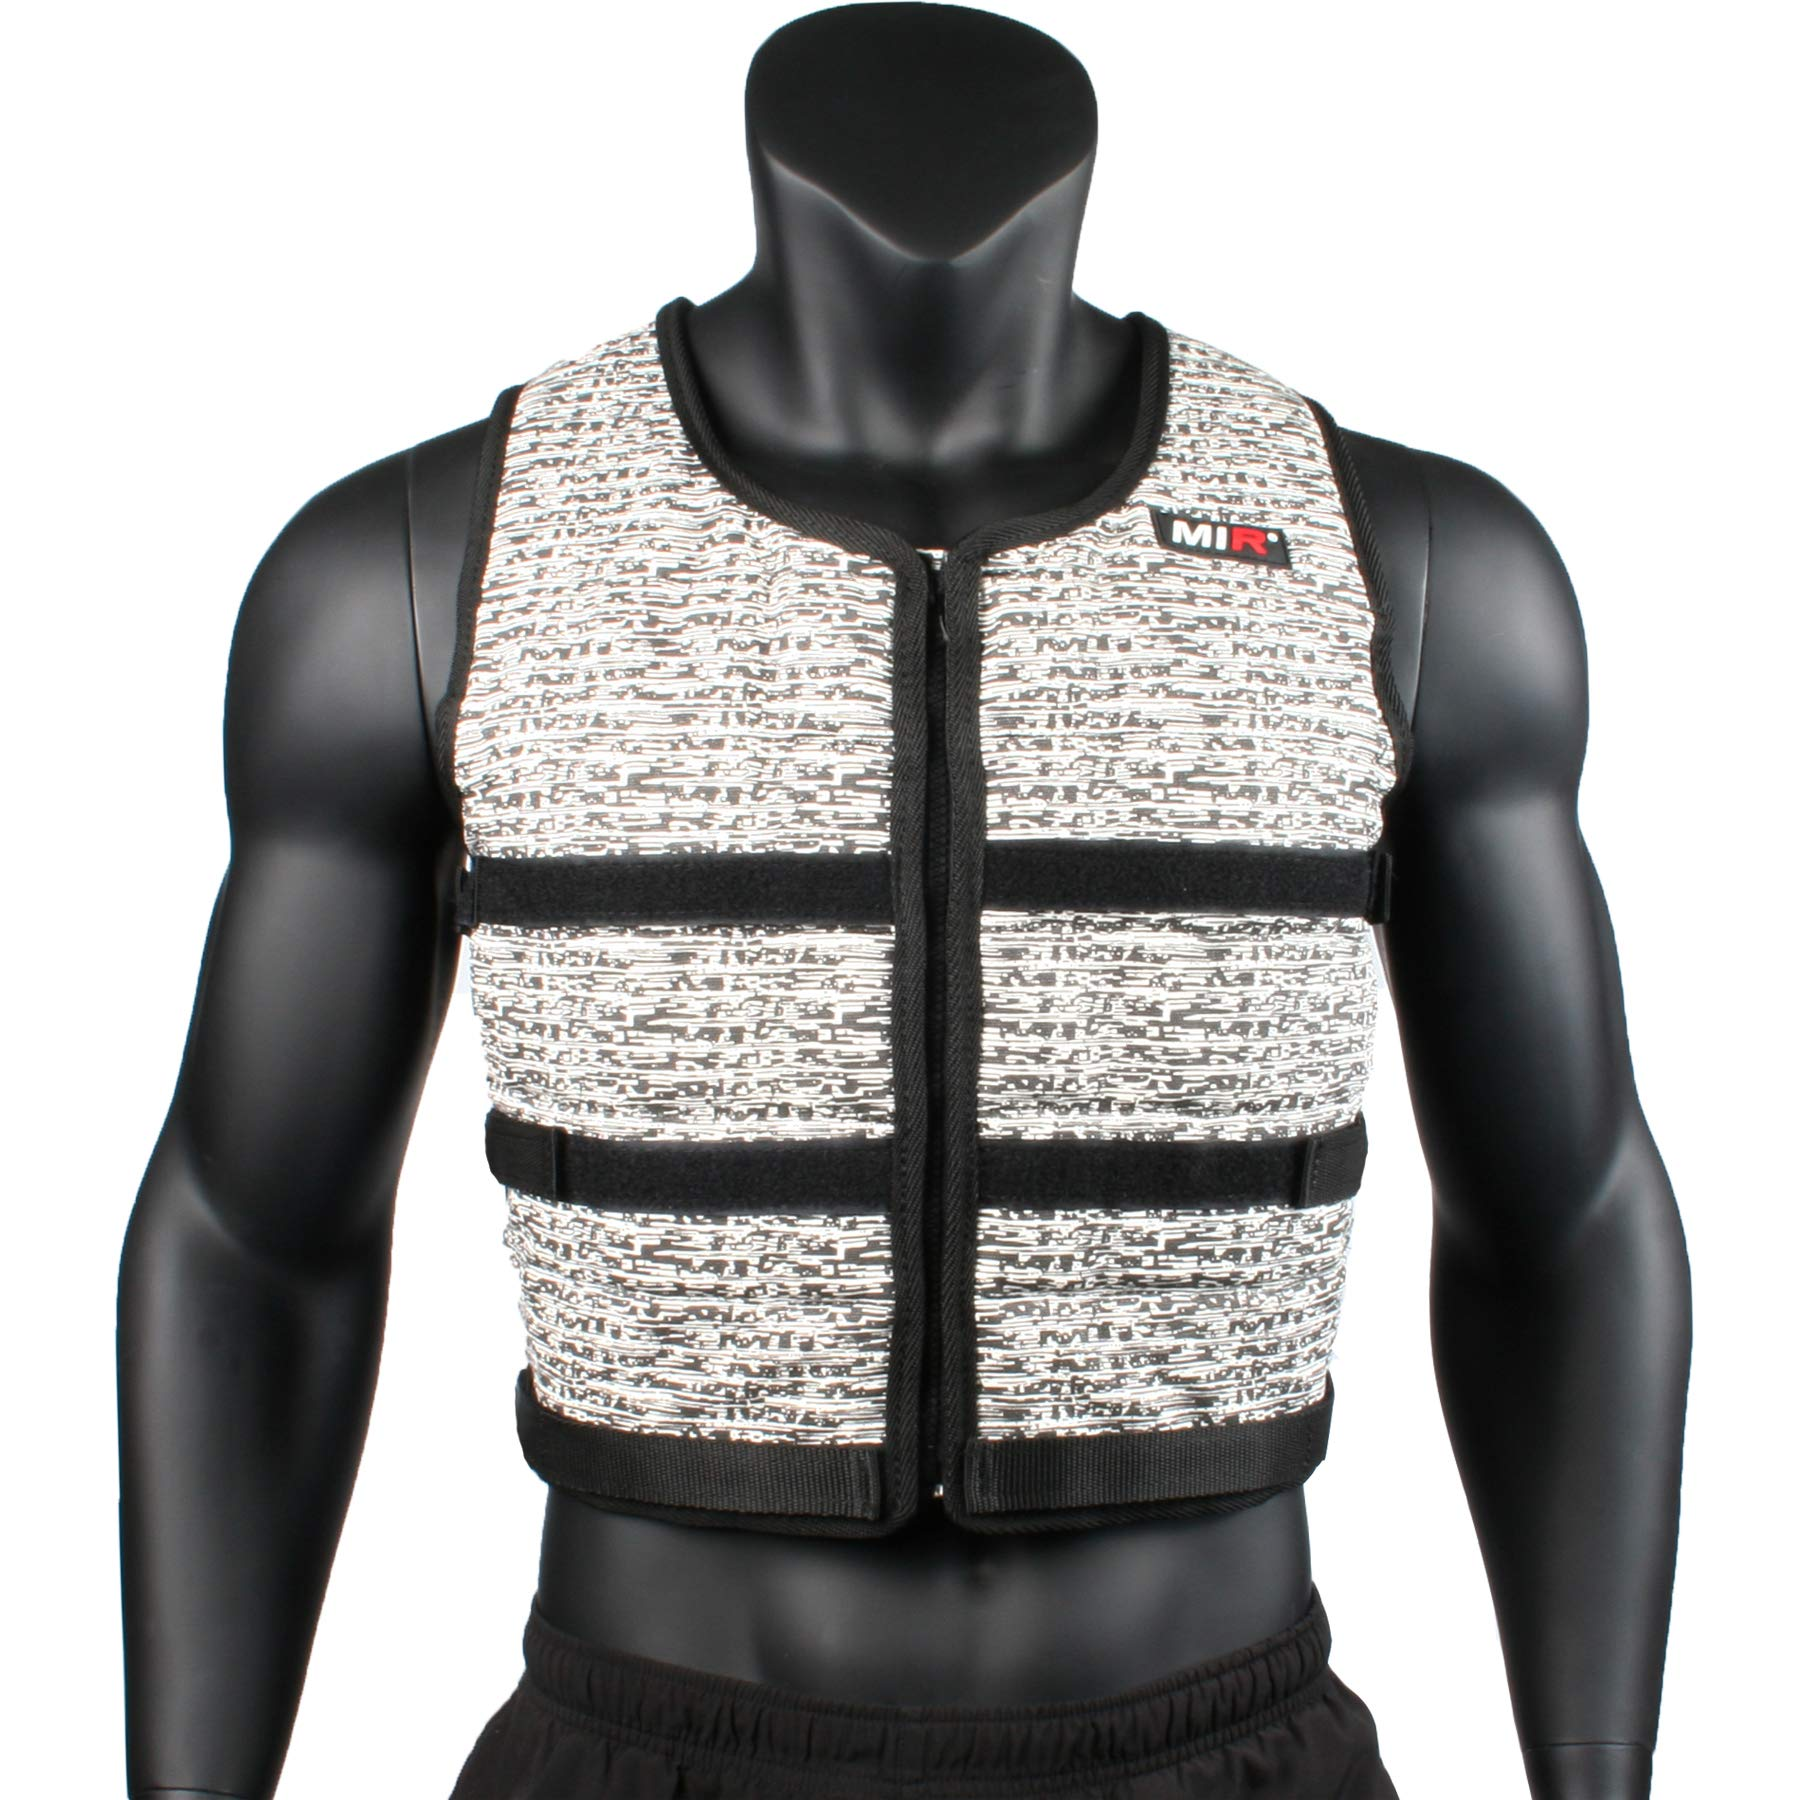 Mir Super Slim AIR Flow Adjustable Weighted Vest Machine Washable. for Men & Women (Black - 16LBS) by Mir (Image #2)